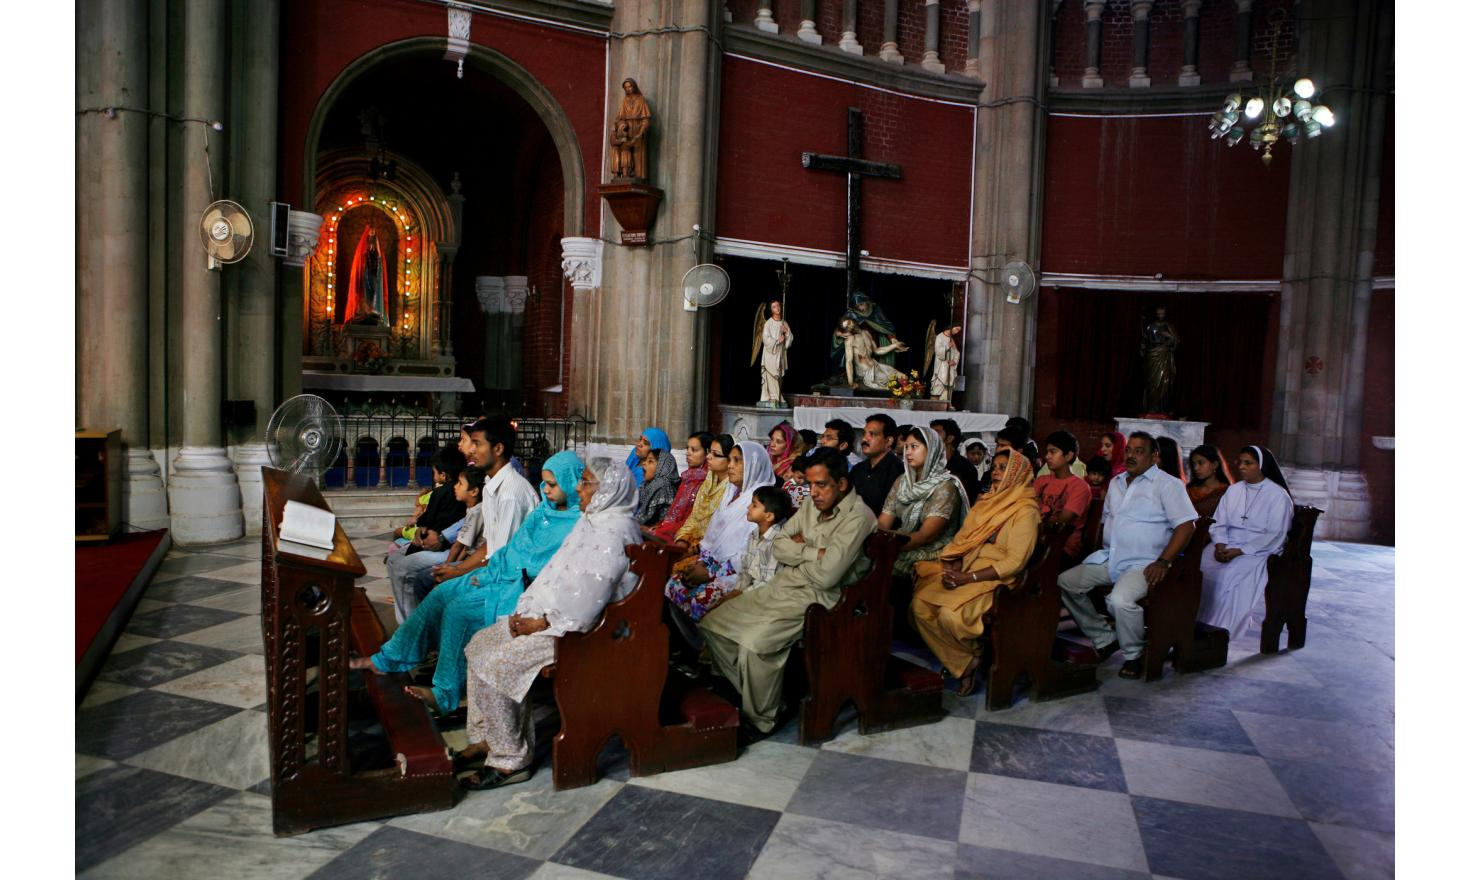 Christians: Sunday worship at Sacred Heart Cathedral. The Islamic fundamentalists are still demanding their conversion and held under a constant threat